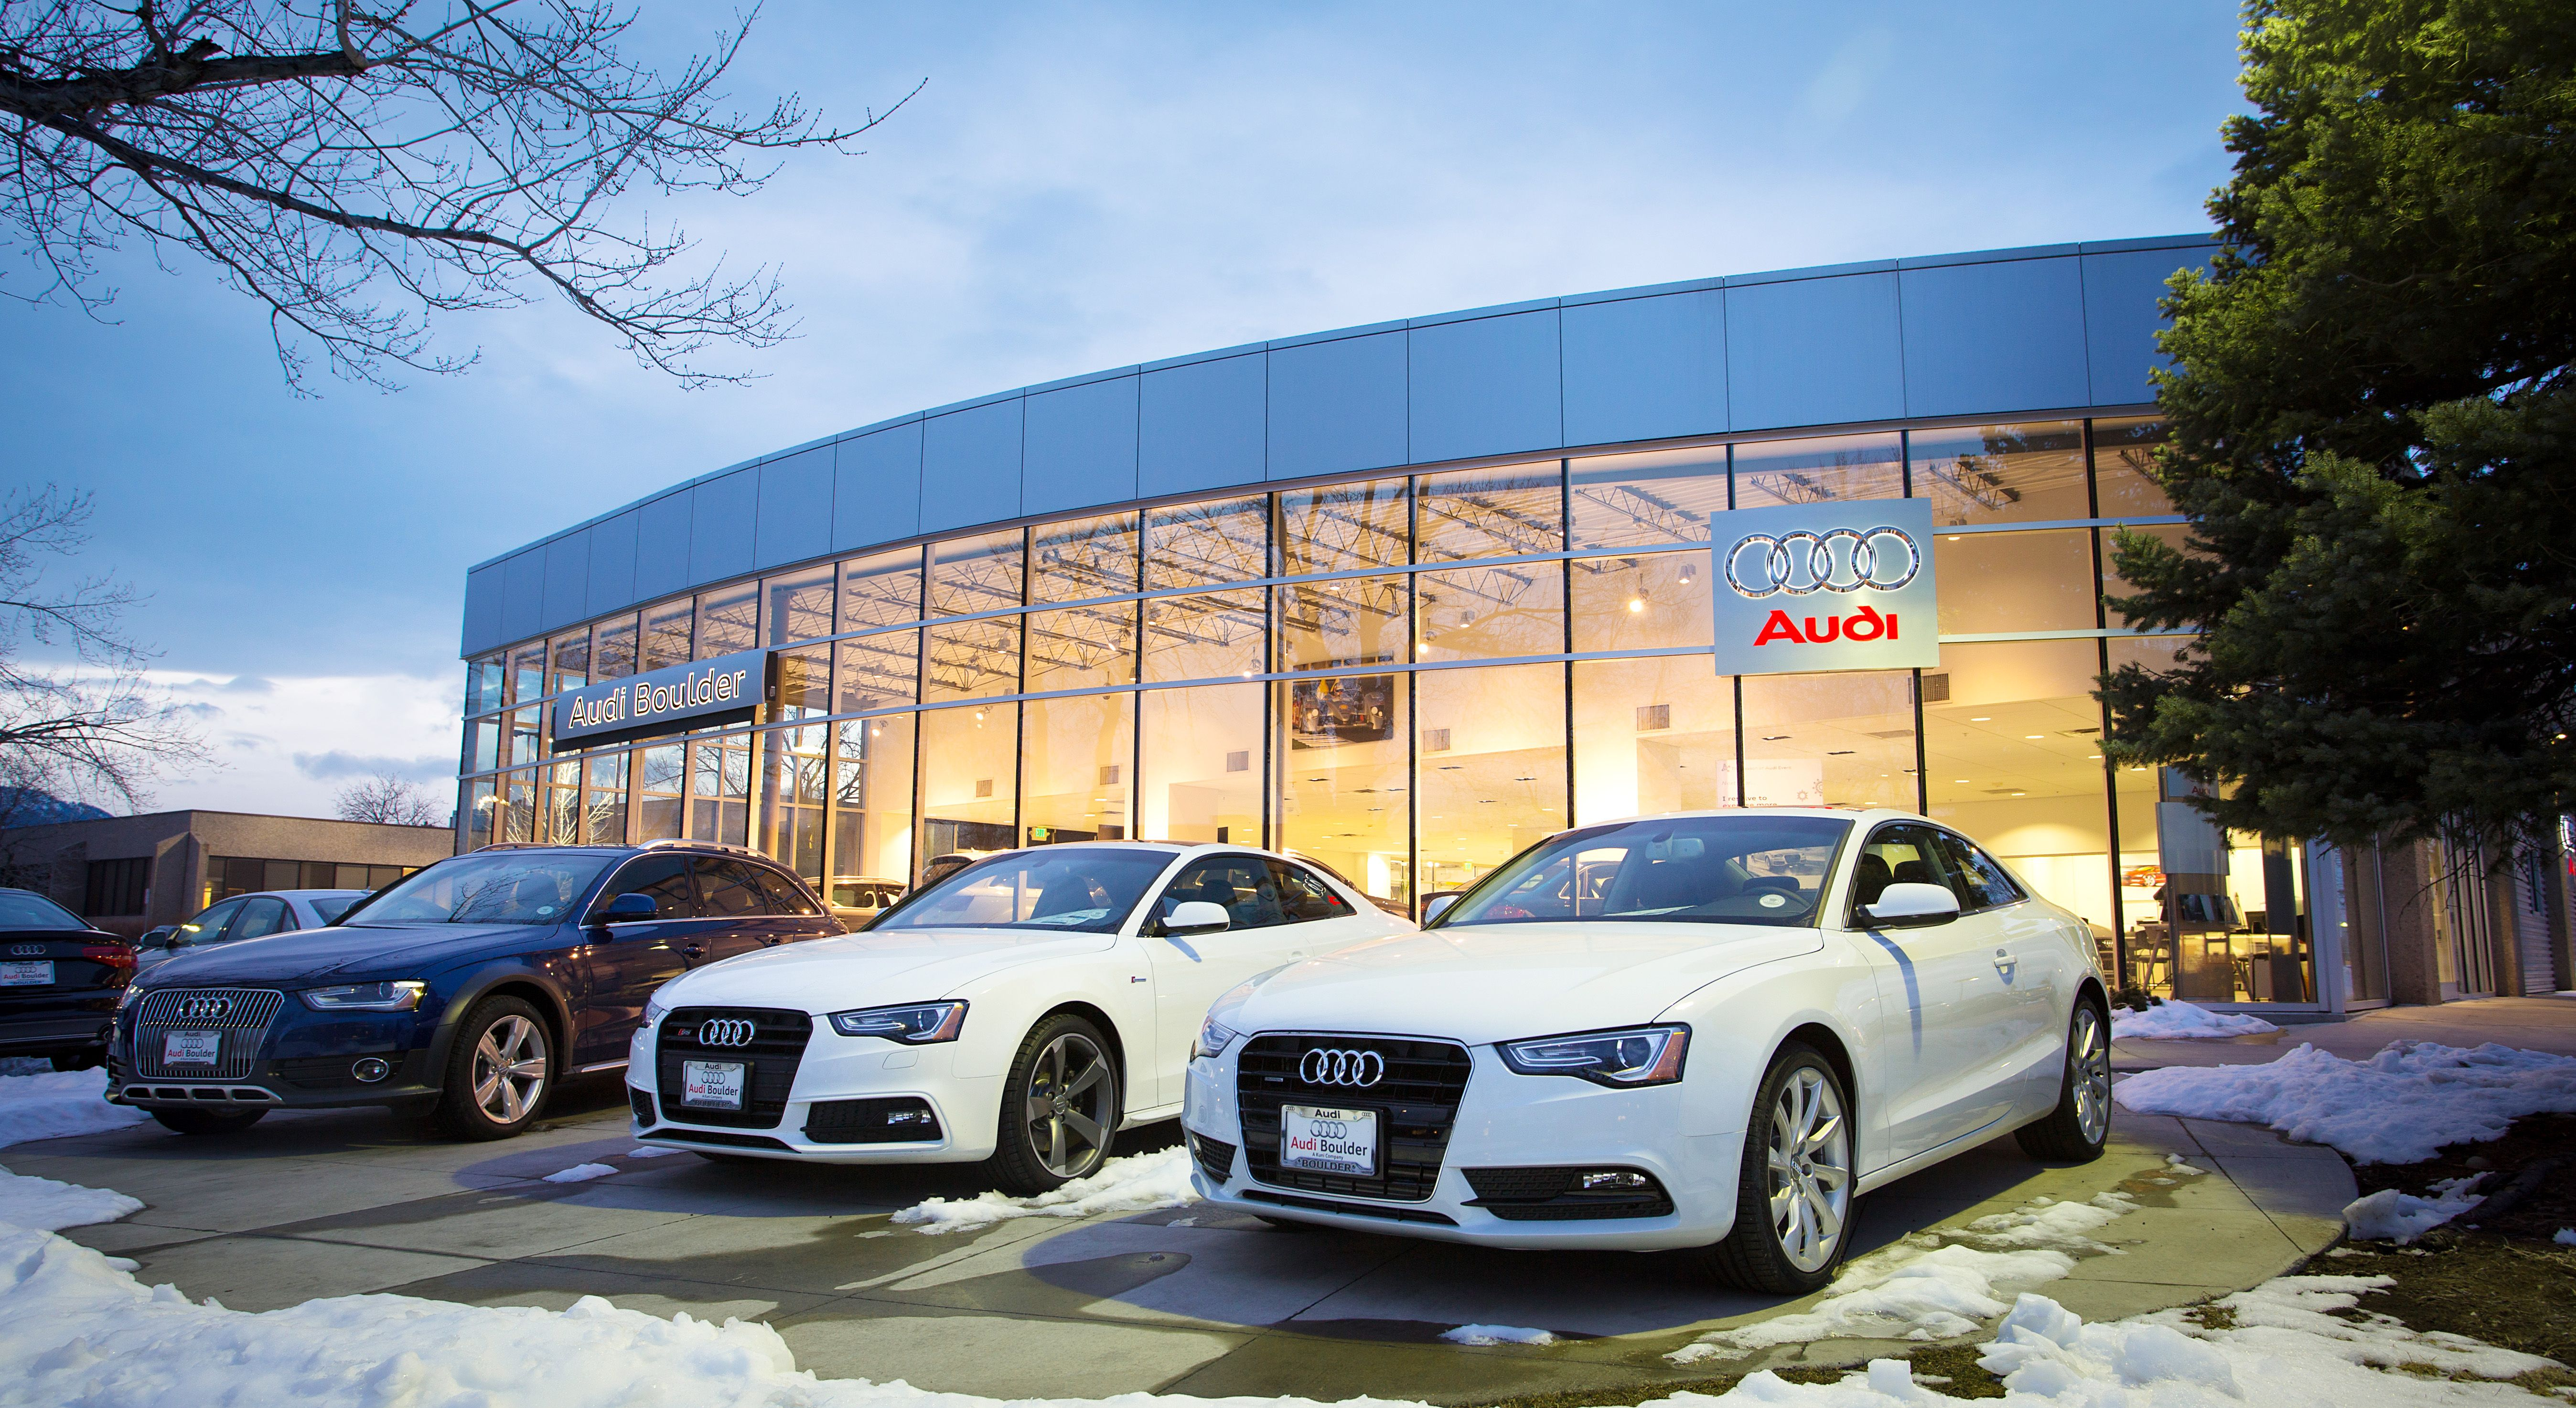 Audi Boulder Colorado Dealership Photo Exposition Drive - Audi boulder